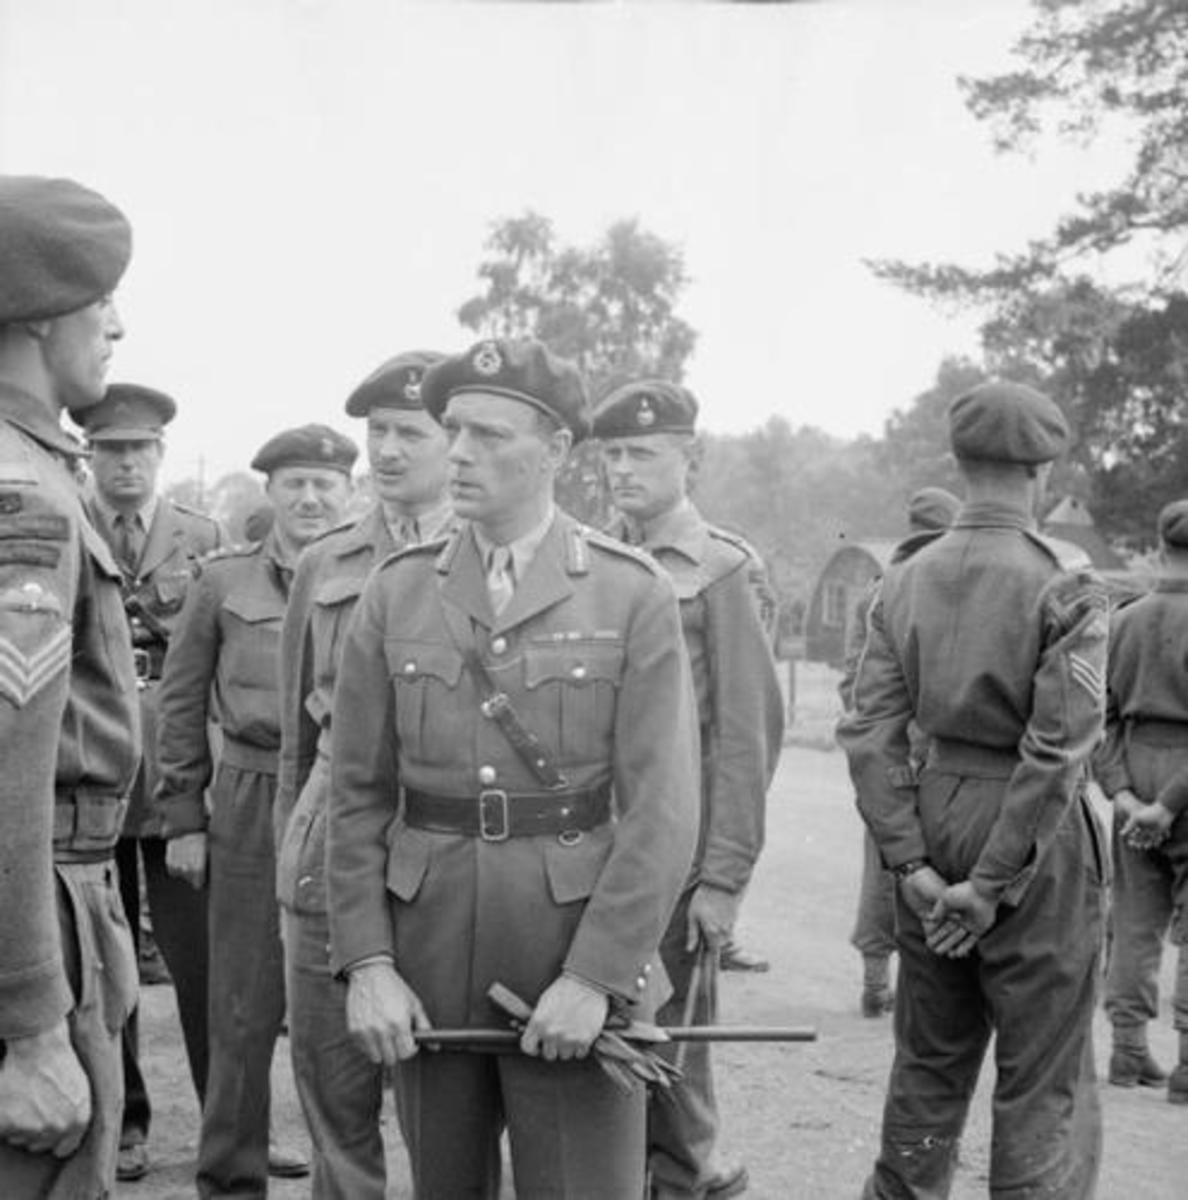 Brigadier Laycock inspects 'Layforce' on parade